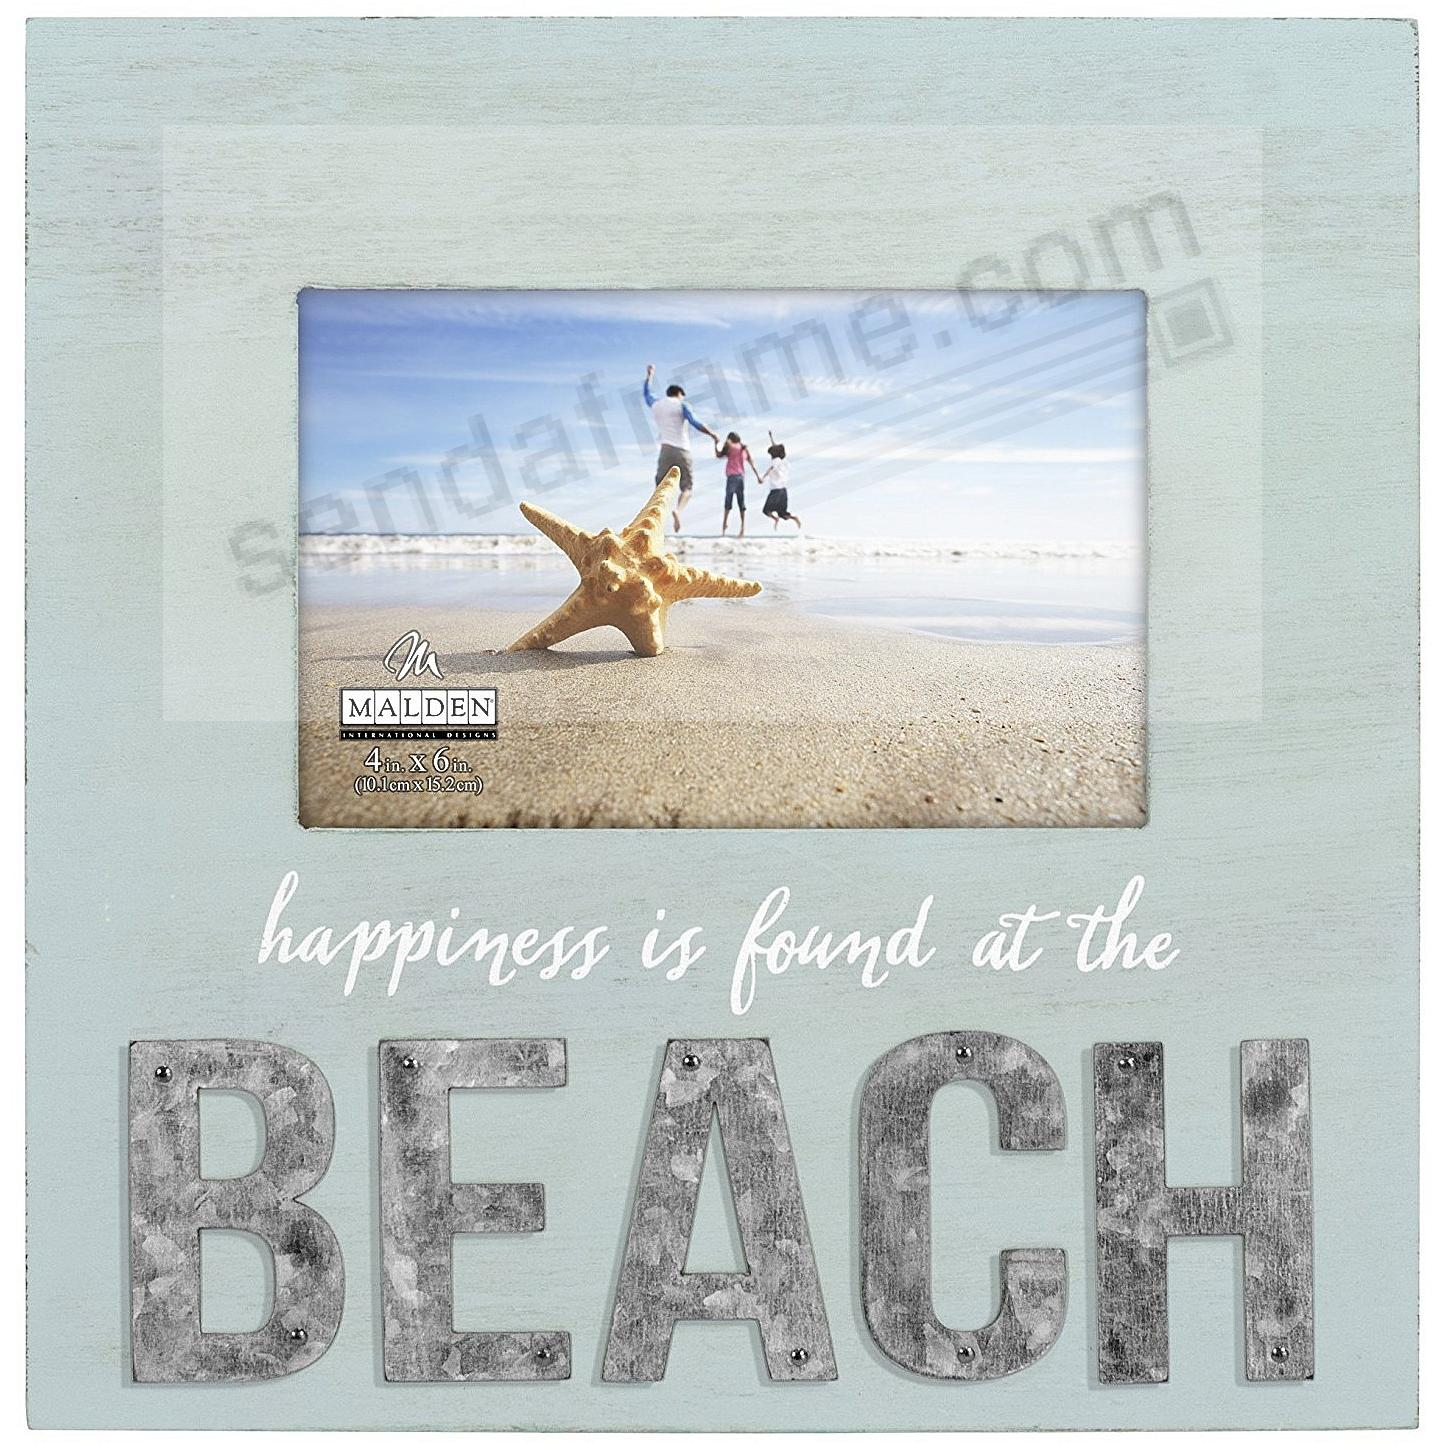 HAPPINESS IS FOUND AT THE BEACH Coastal Wood 5x7/4x6 Frame Sign by Malden®